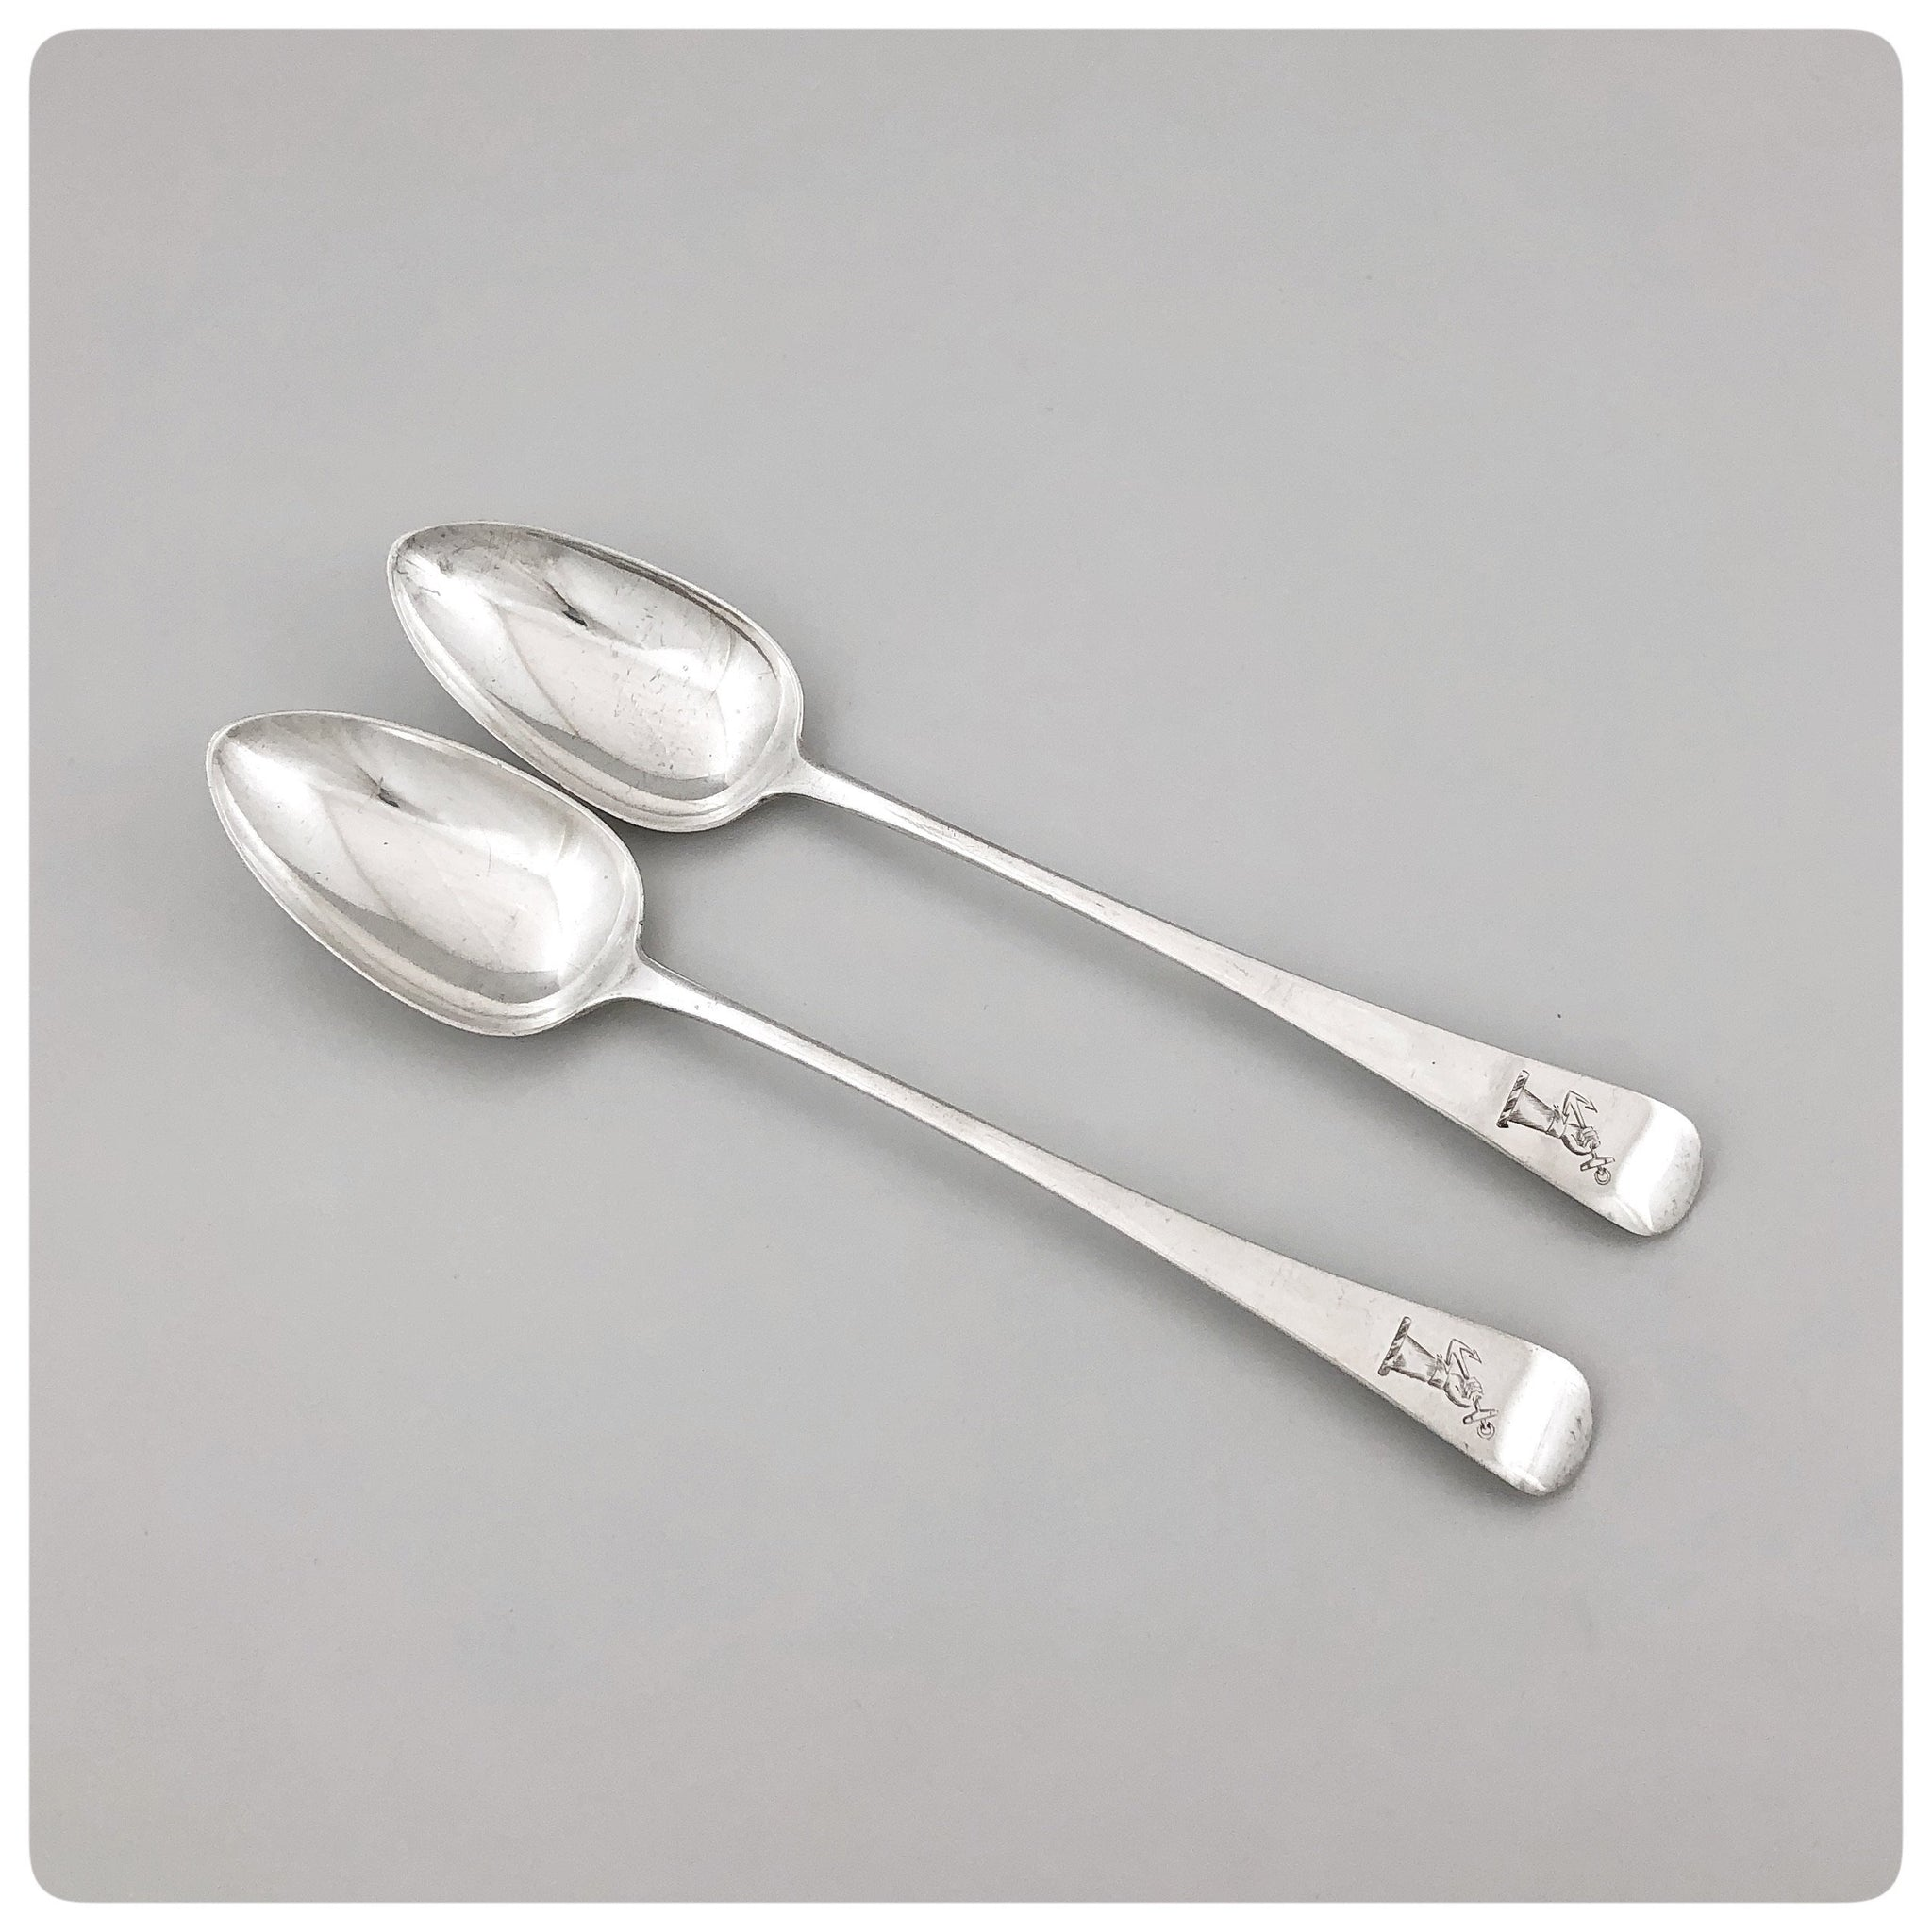 Pair of English Sterling Silver Rice / Stuffing / Platter Spoons, George Smith II, London, 1806-1807 - The Silver Vault of Charleston